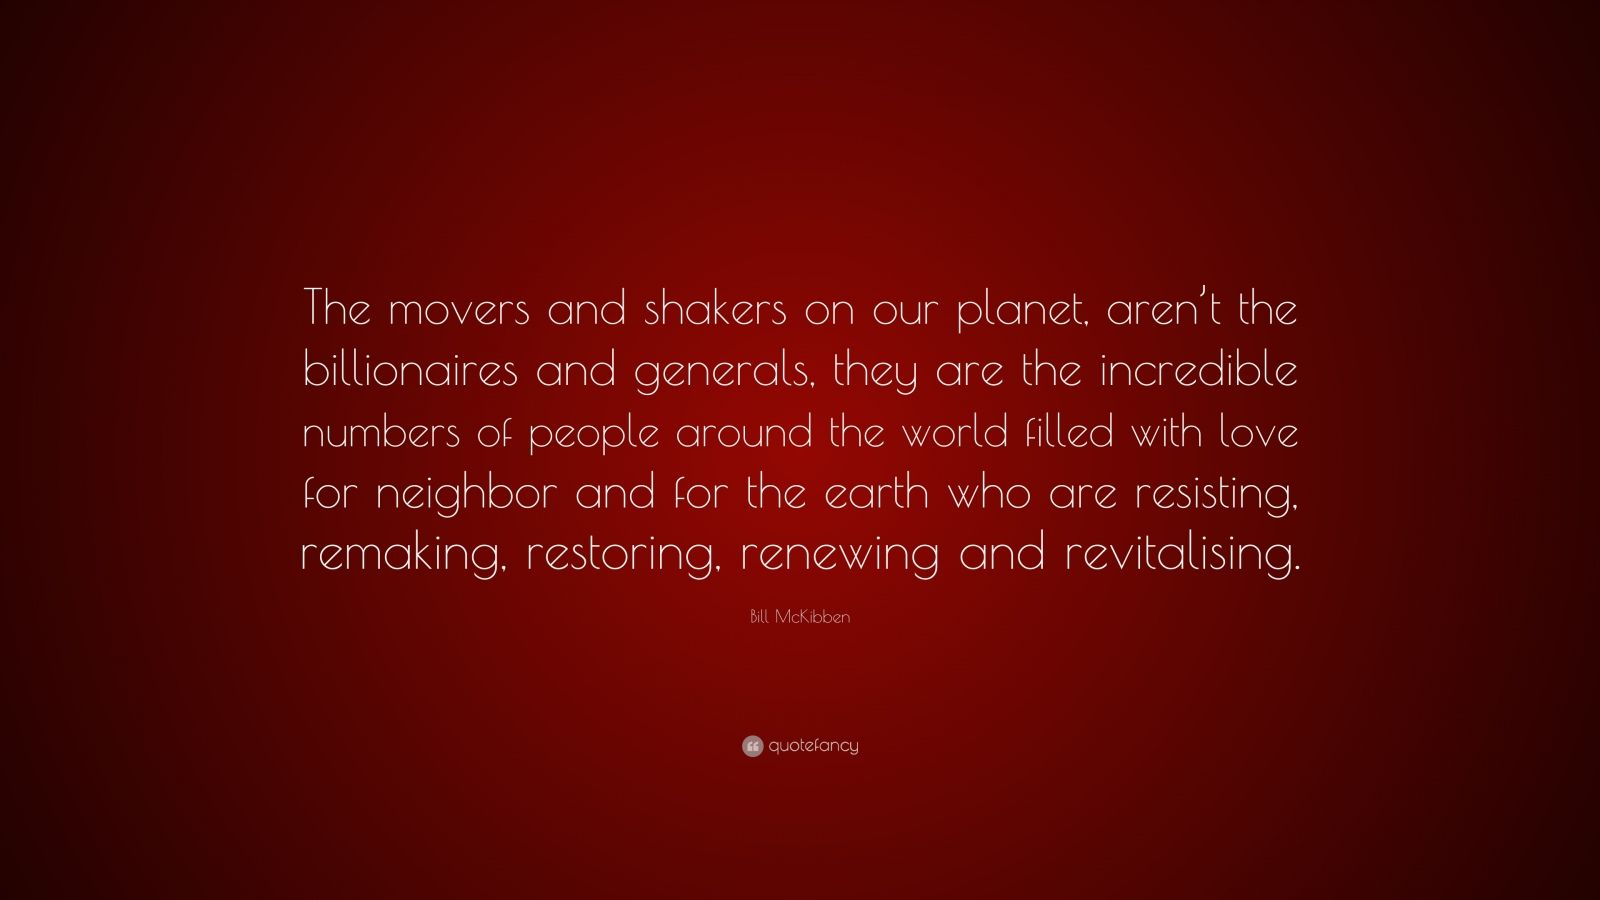 """Bill McKibben Quote: """"The movers and shakers on our planet, aren't the billionaires and generals, they are the incredible numbers of people around the world filled with love for neighbor and for the earth who are resisting, remaking, restoring, renewing and revitalising."""""""